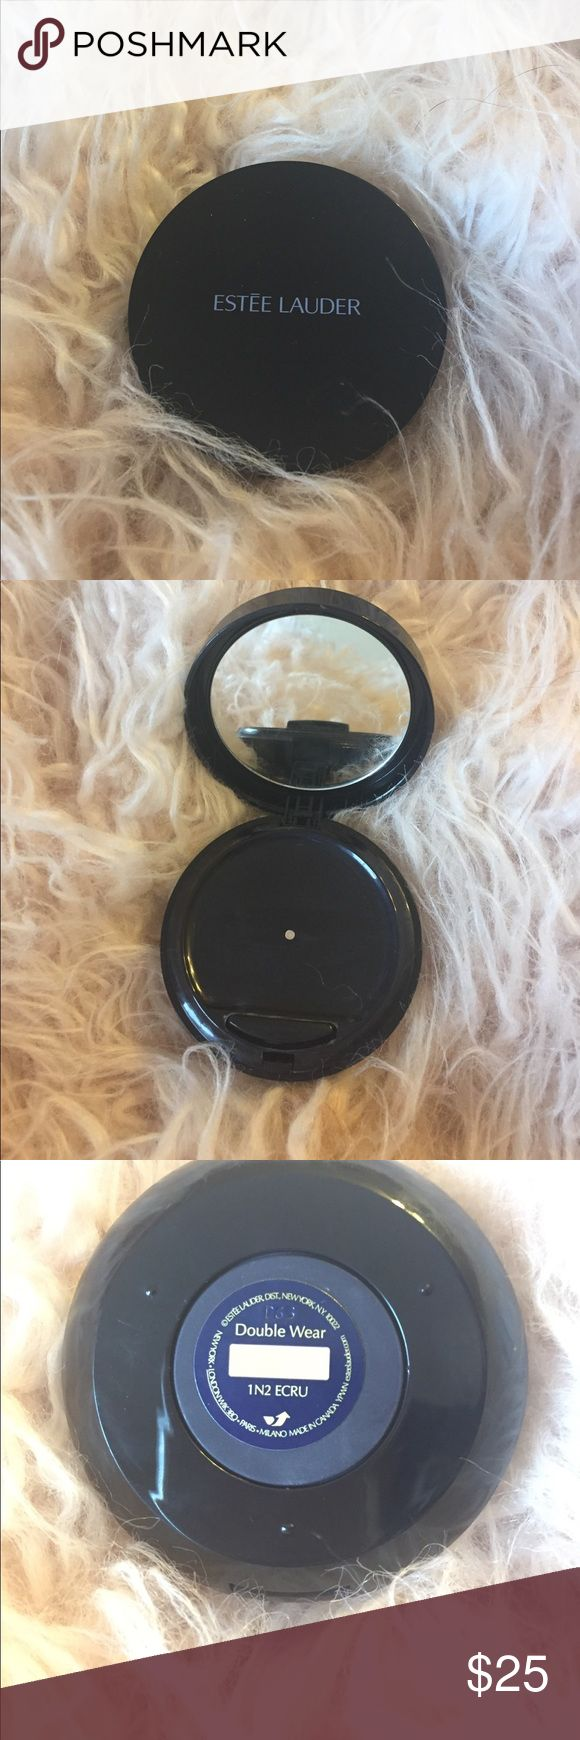 Estée Lauder double wear foundation Estée Lauder double wear foundation in shade 1N2. It's like an on the go compact you put the button and the fluid comes out. I love it it's just not my shade on only tried once. Estee Lauder Makeup Foundation